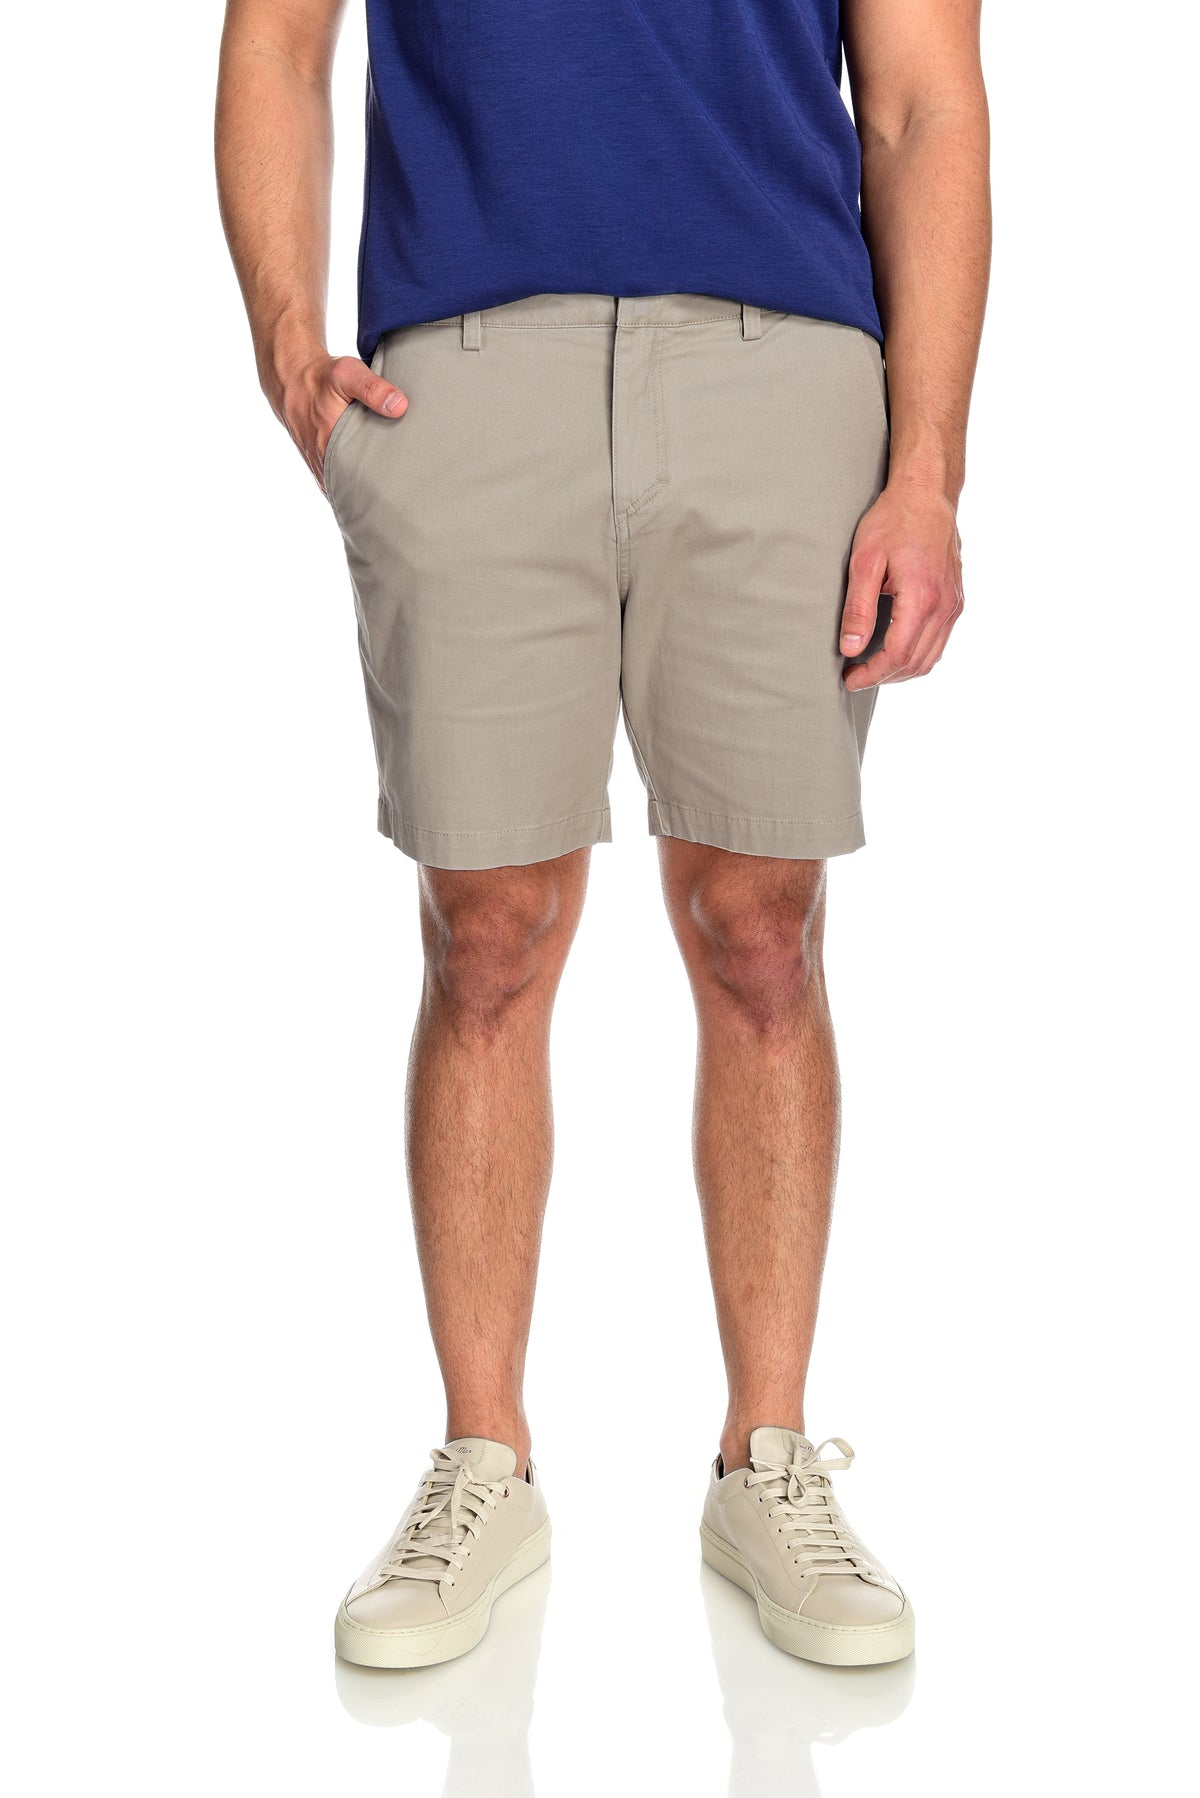 Men's 2-way stretching and breathable cotton blend Grayson Shorts in Khaki